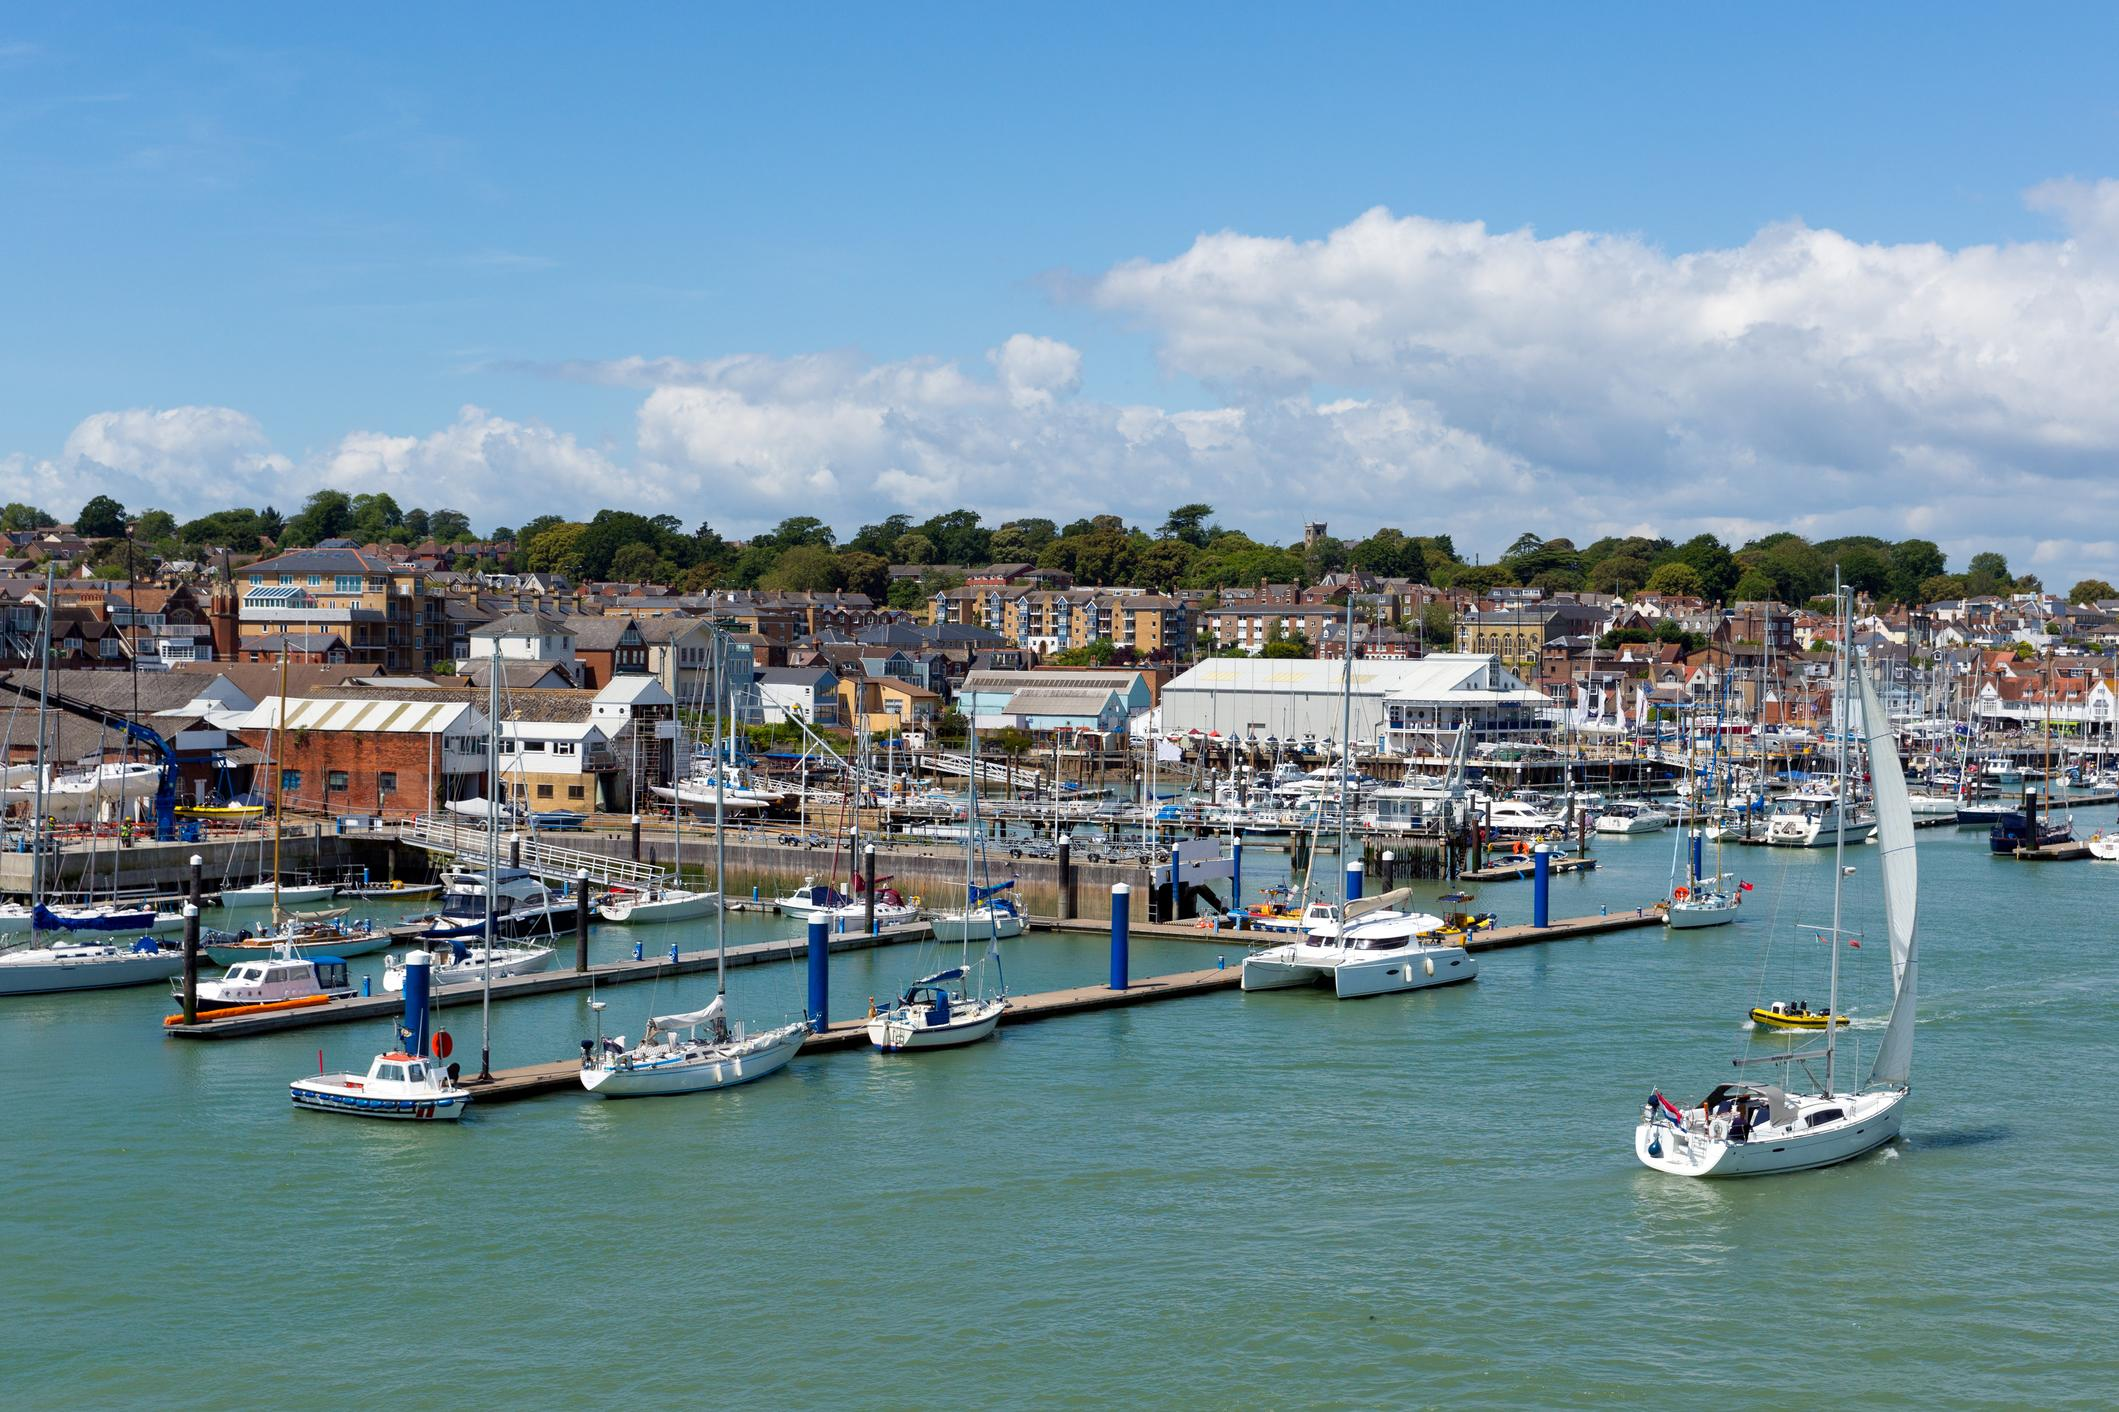 """The <a href=""""http://travel.aol.co.uk/guides/isle+of+wight/"""" target=""""_blank"""">Isle of Wight</a> can be found just off England's south coast, only two hours from London. Its mild climate, white cliffs and tranquil beaches make it a popular holiday destination all year round whether you're looking for a quick weekend away or a long break."""